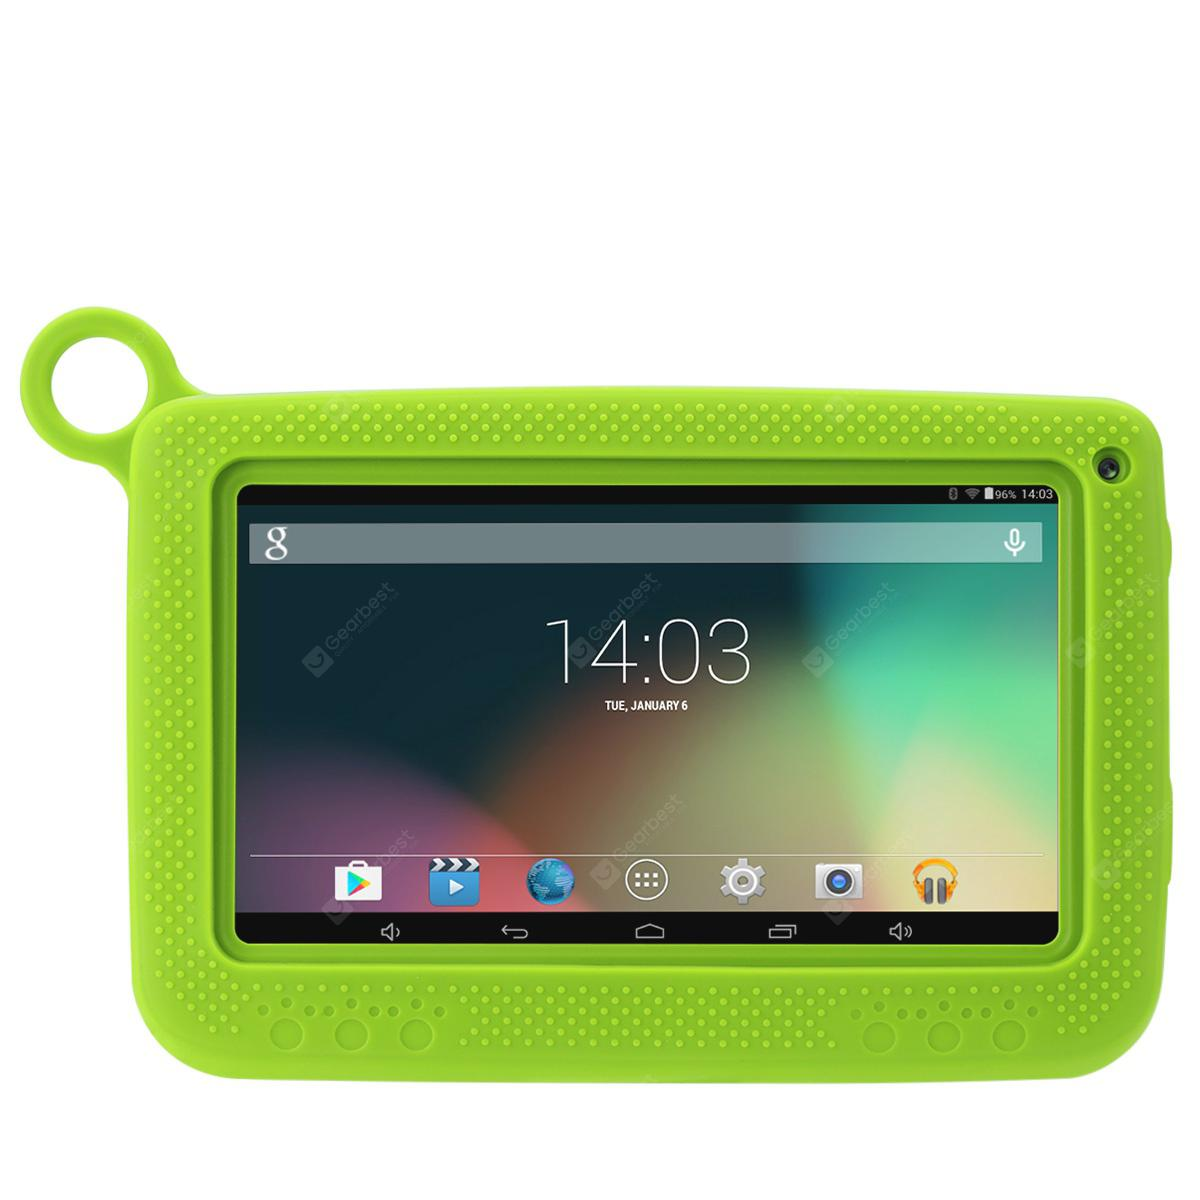 "Excelvan Q758 7"" 1024*600 Android 4.4 Allwinner A33 512MB+8GB Dual Camera WIFI Support External 3G Tablet PC -  Green"